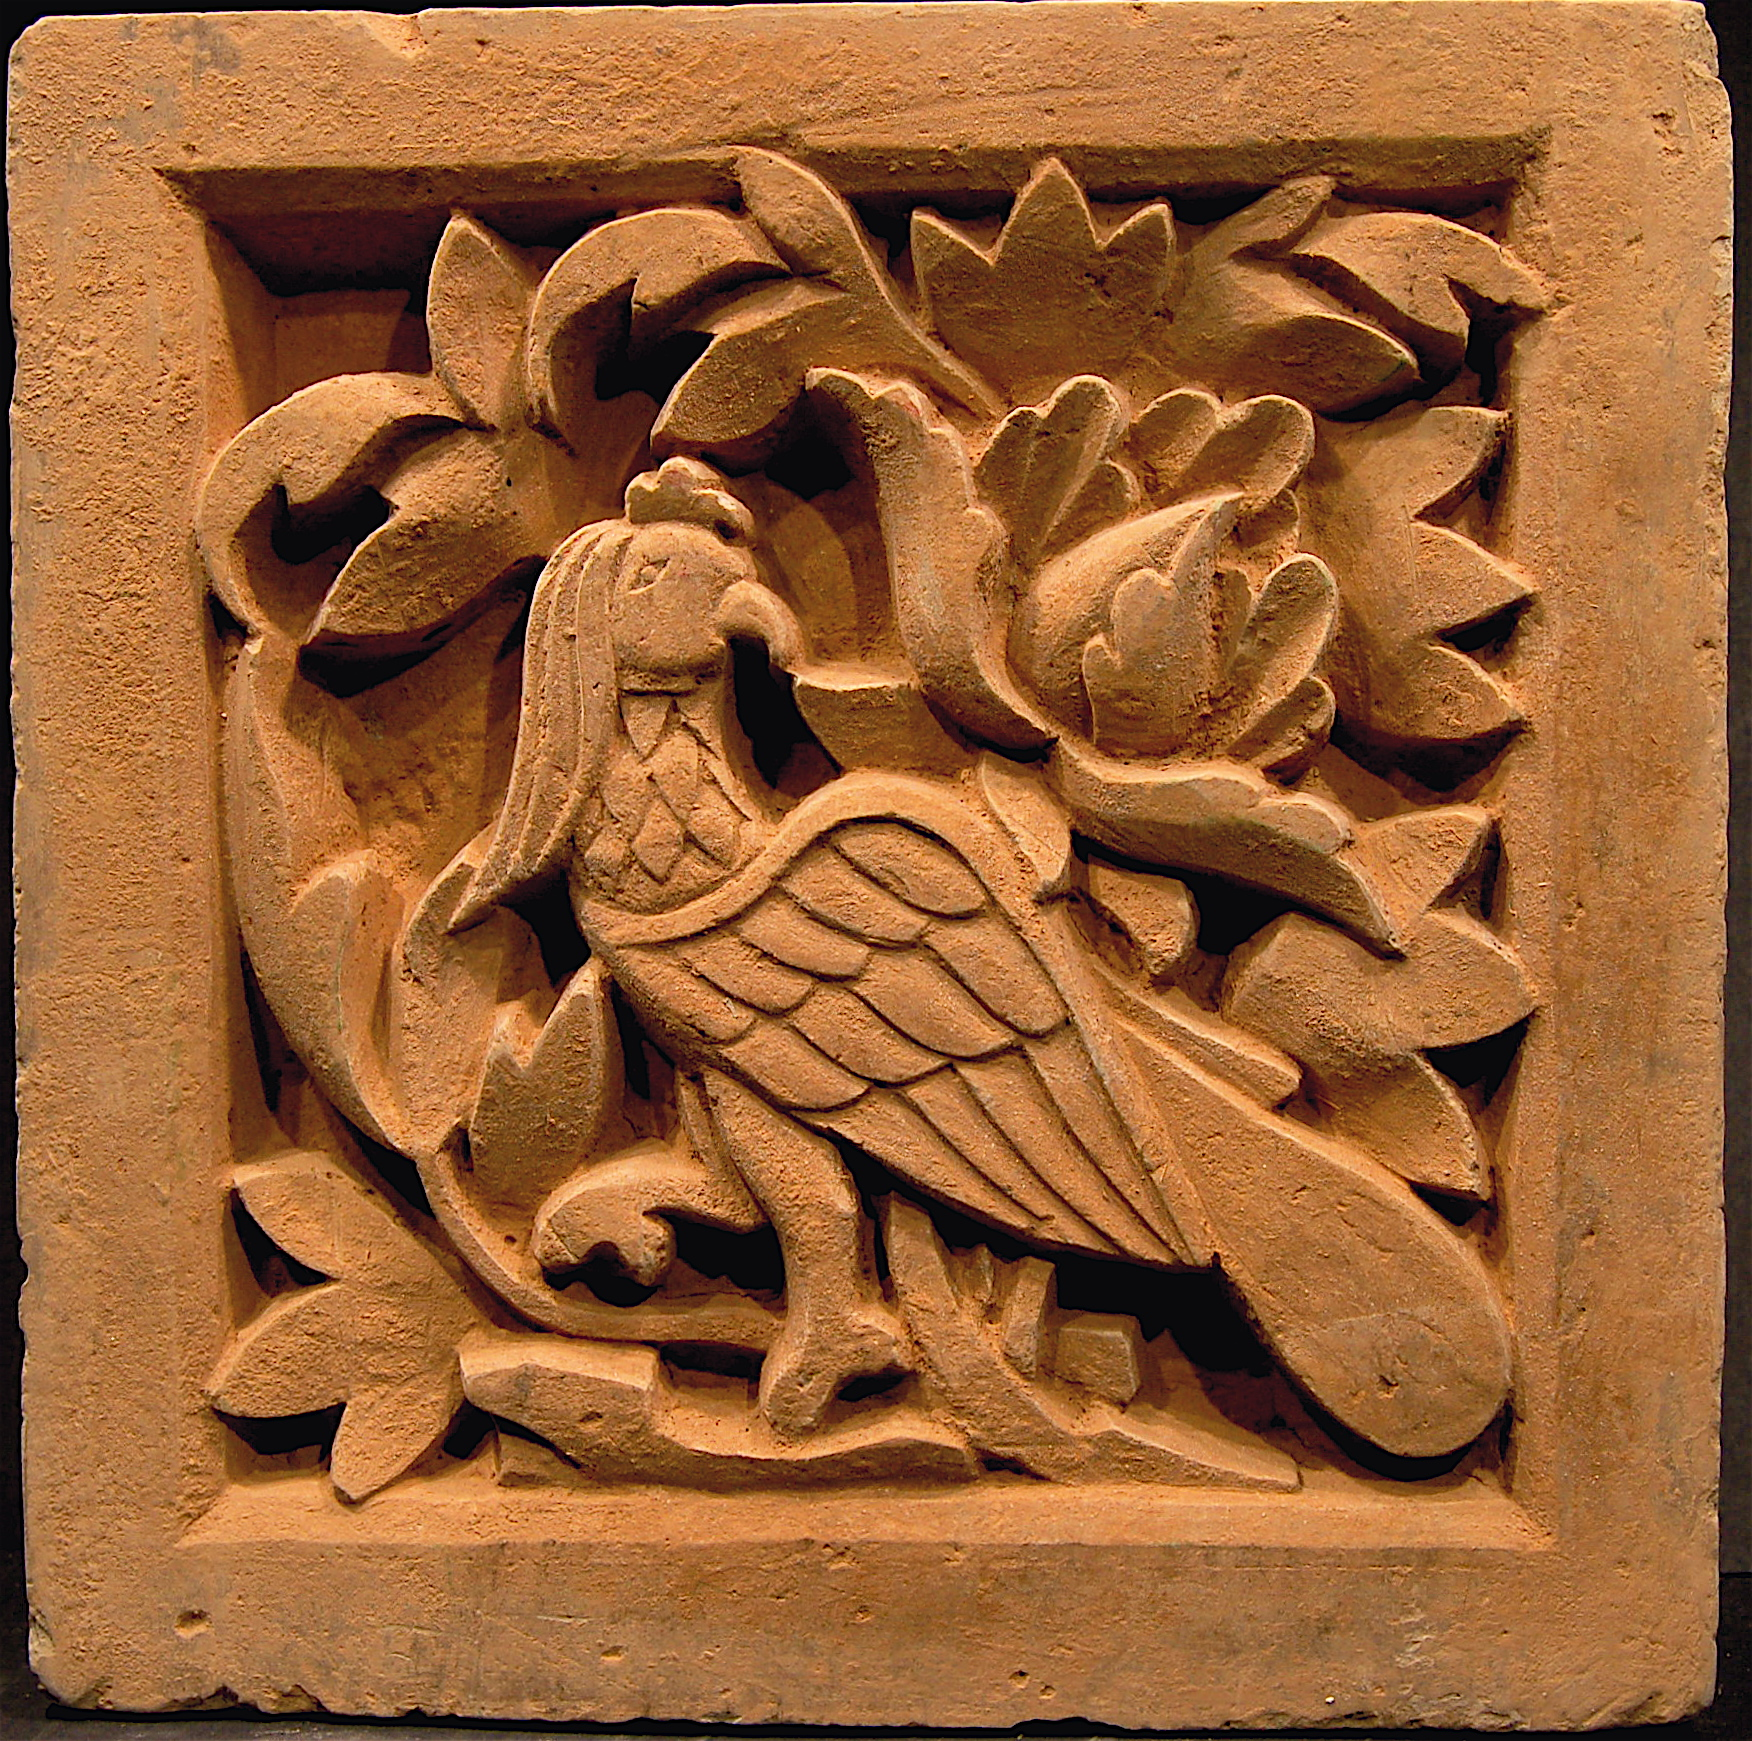 Carved pottery tiles artlistings